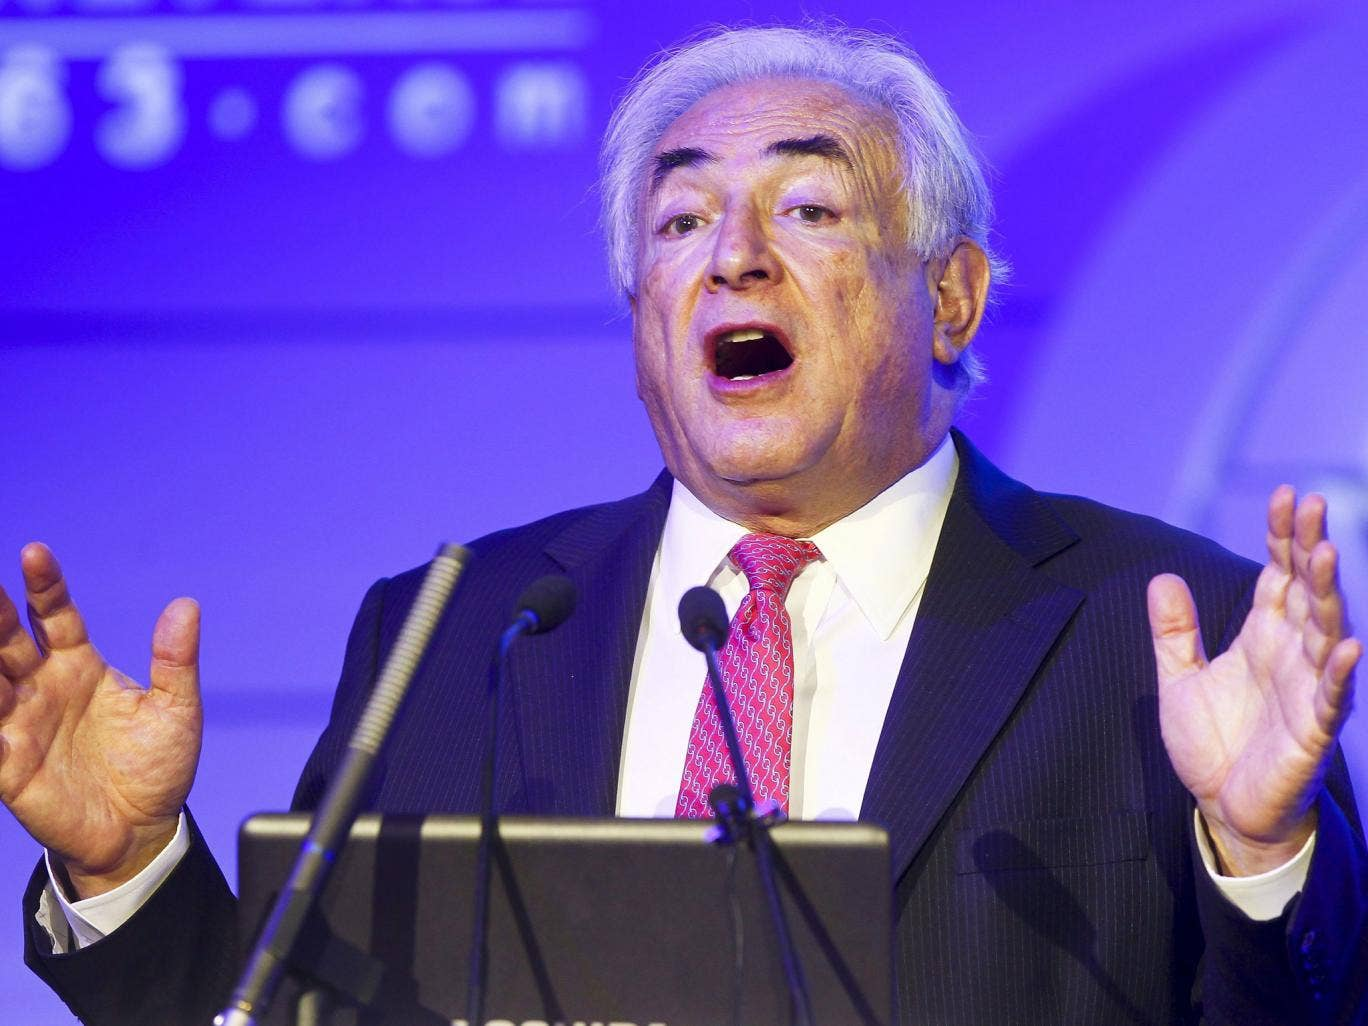 Dominique Strauss-Kahn failed to end the criminal investigation into his alleged role in organising sex parties with prostitutes in the US and France and Belgium